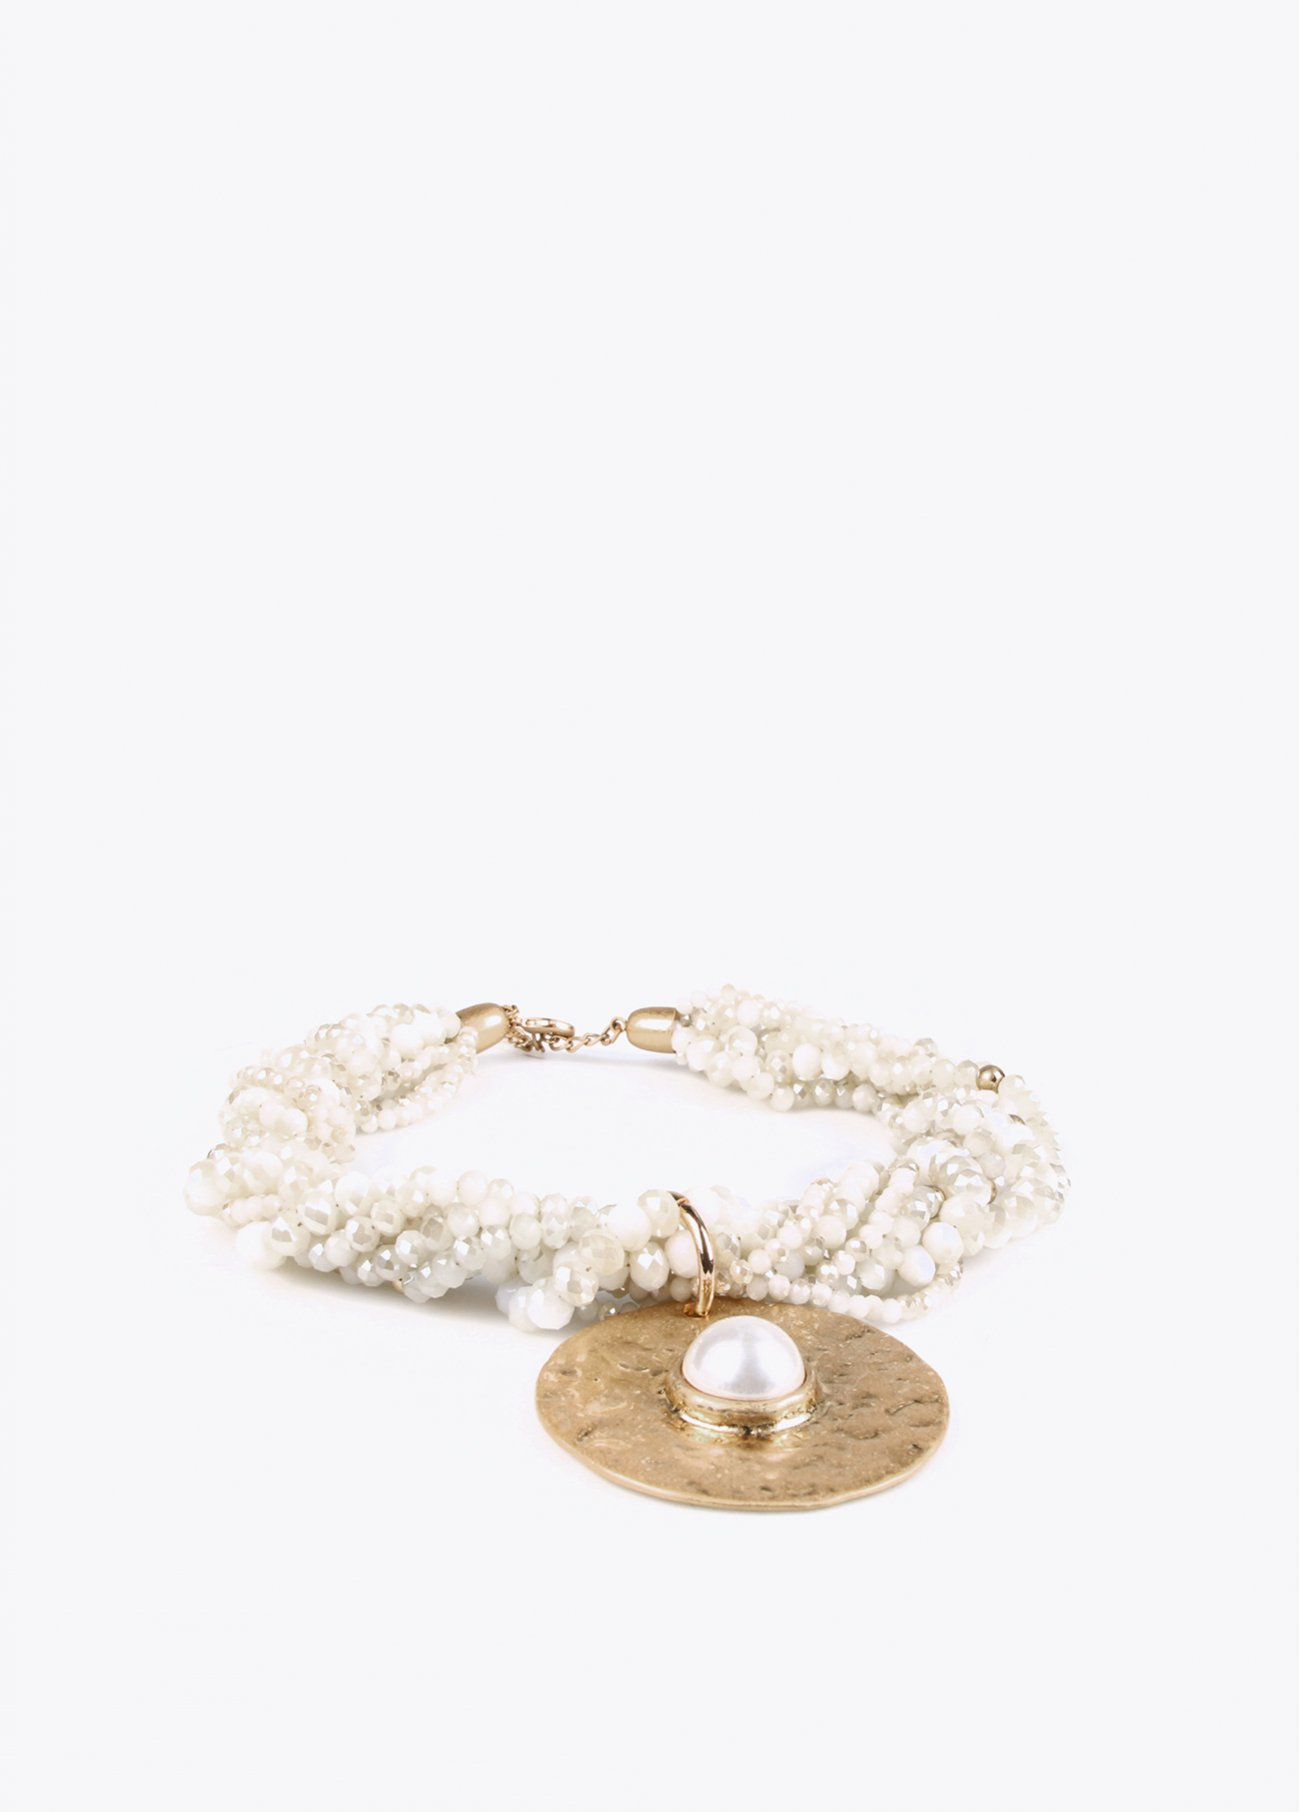 Off white faceted stones necklace with m